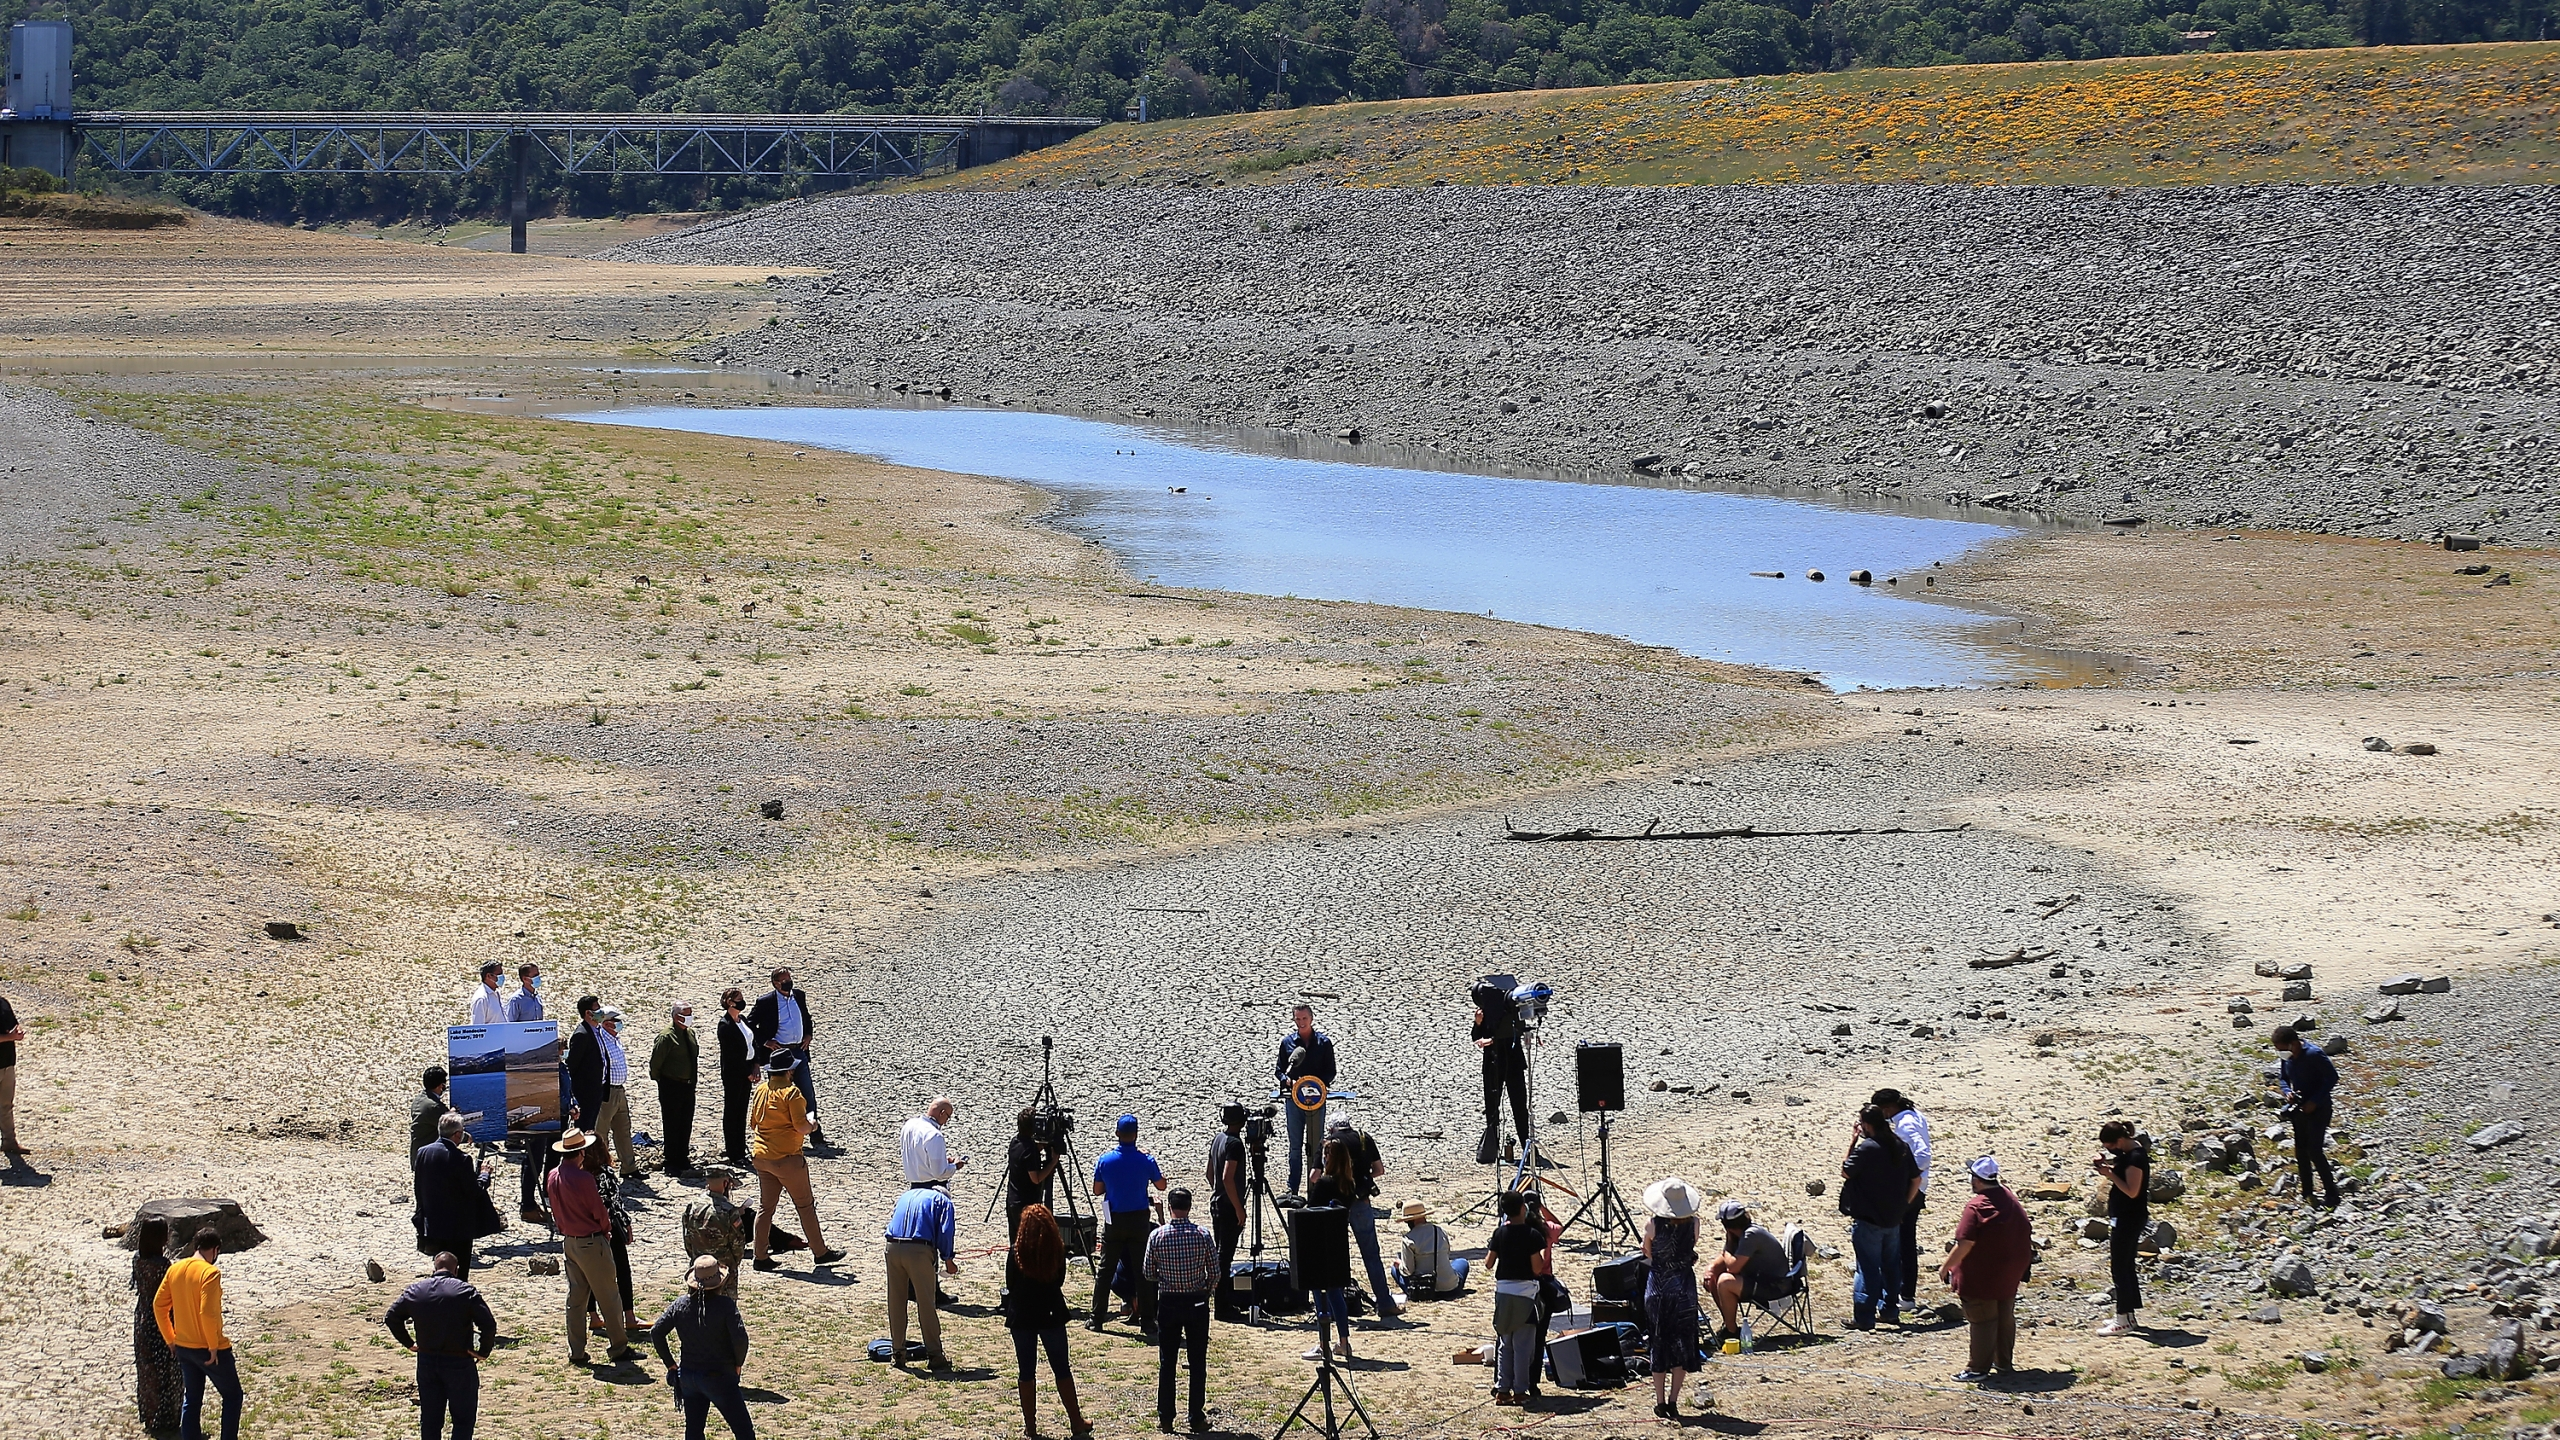 In this April 21, 2021, file photo, California Gov. Gavin Newsom holds a news conference in the parched basin of Lake Mendocino in Ukiah, Calif., where he announced he would proclaim a drought emergency for Mendocino and Sonoma counties. (Kent Porter/The Press Democrat via AP, File)